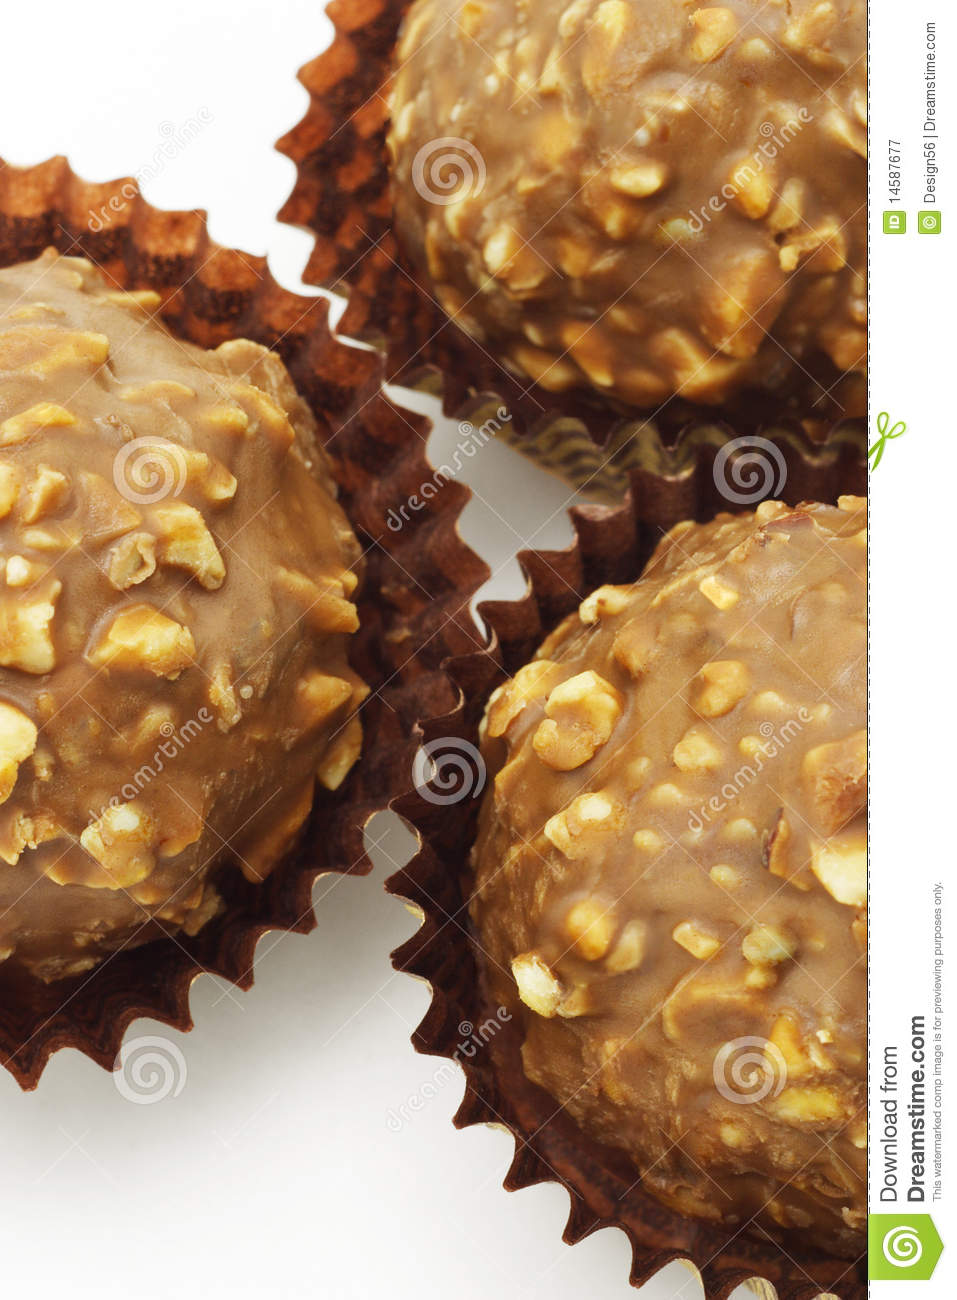 Chocolate And Nuts Balls Royalty Free Stock Photography - Image ...